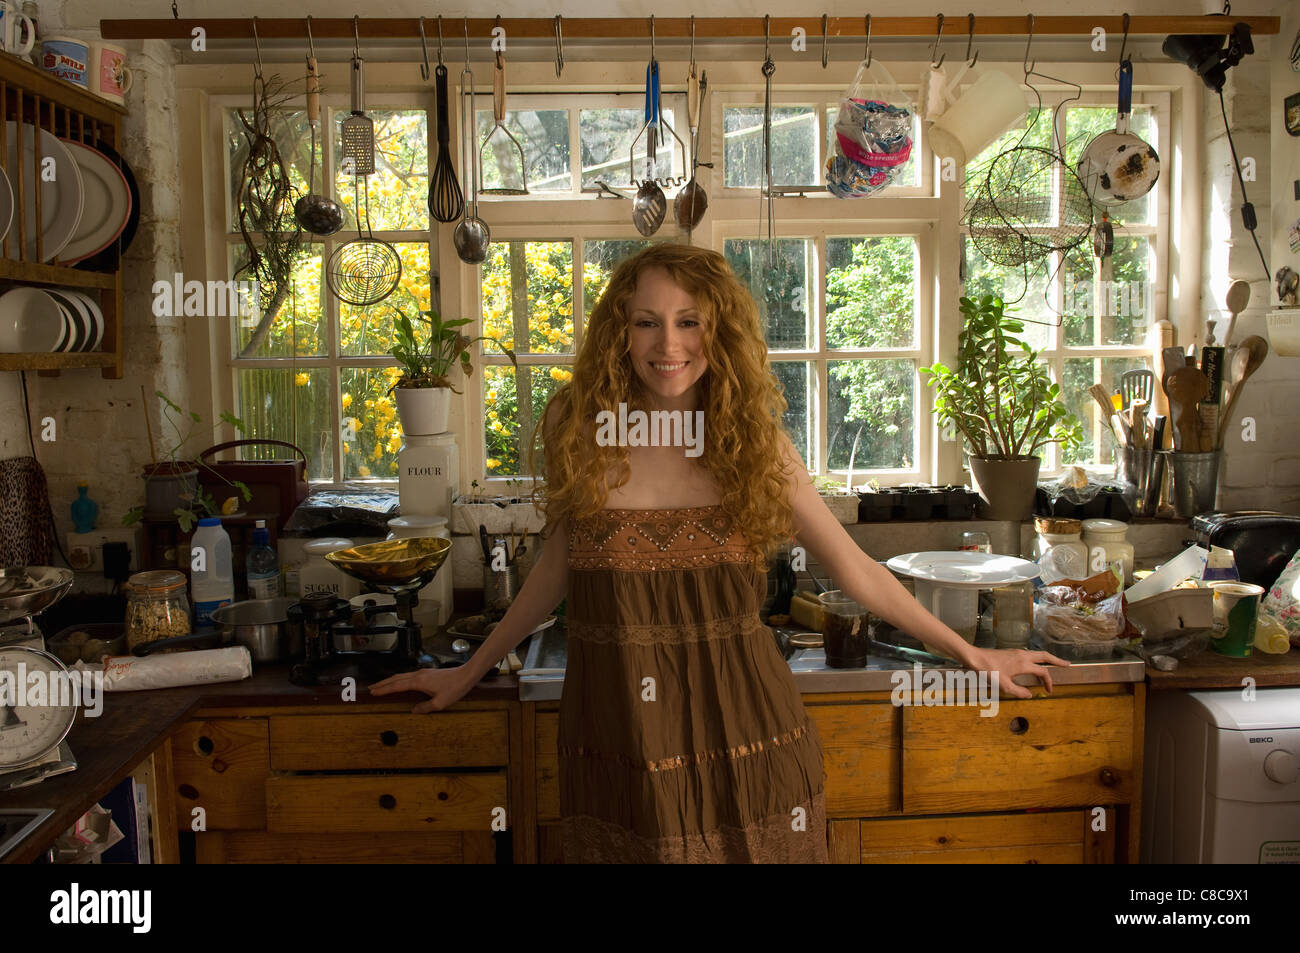 Woman standing in kitchen - Stock Image